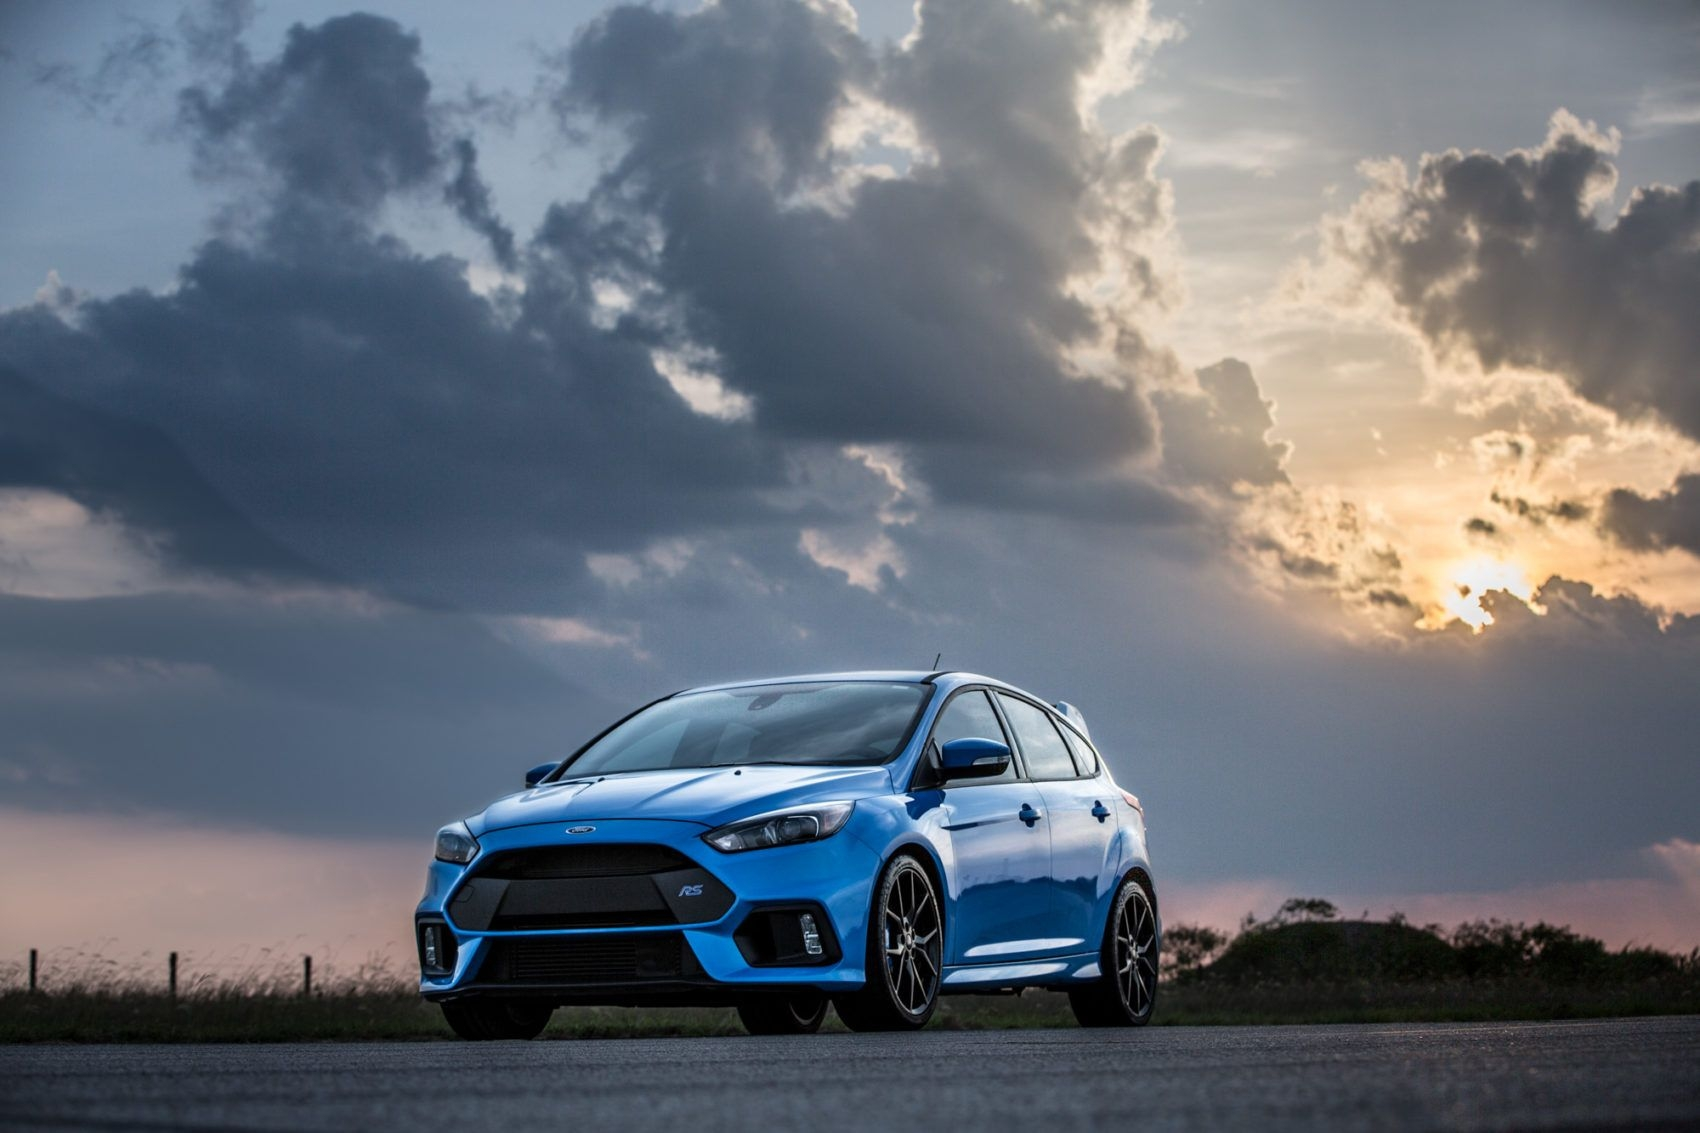 Ford Focus St Wallpapers Yl Computing